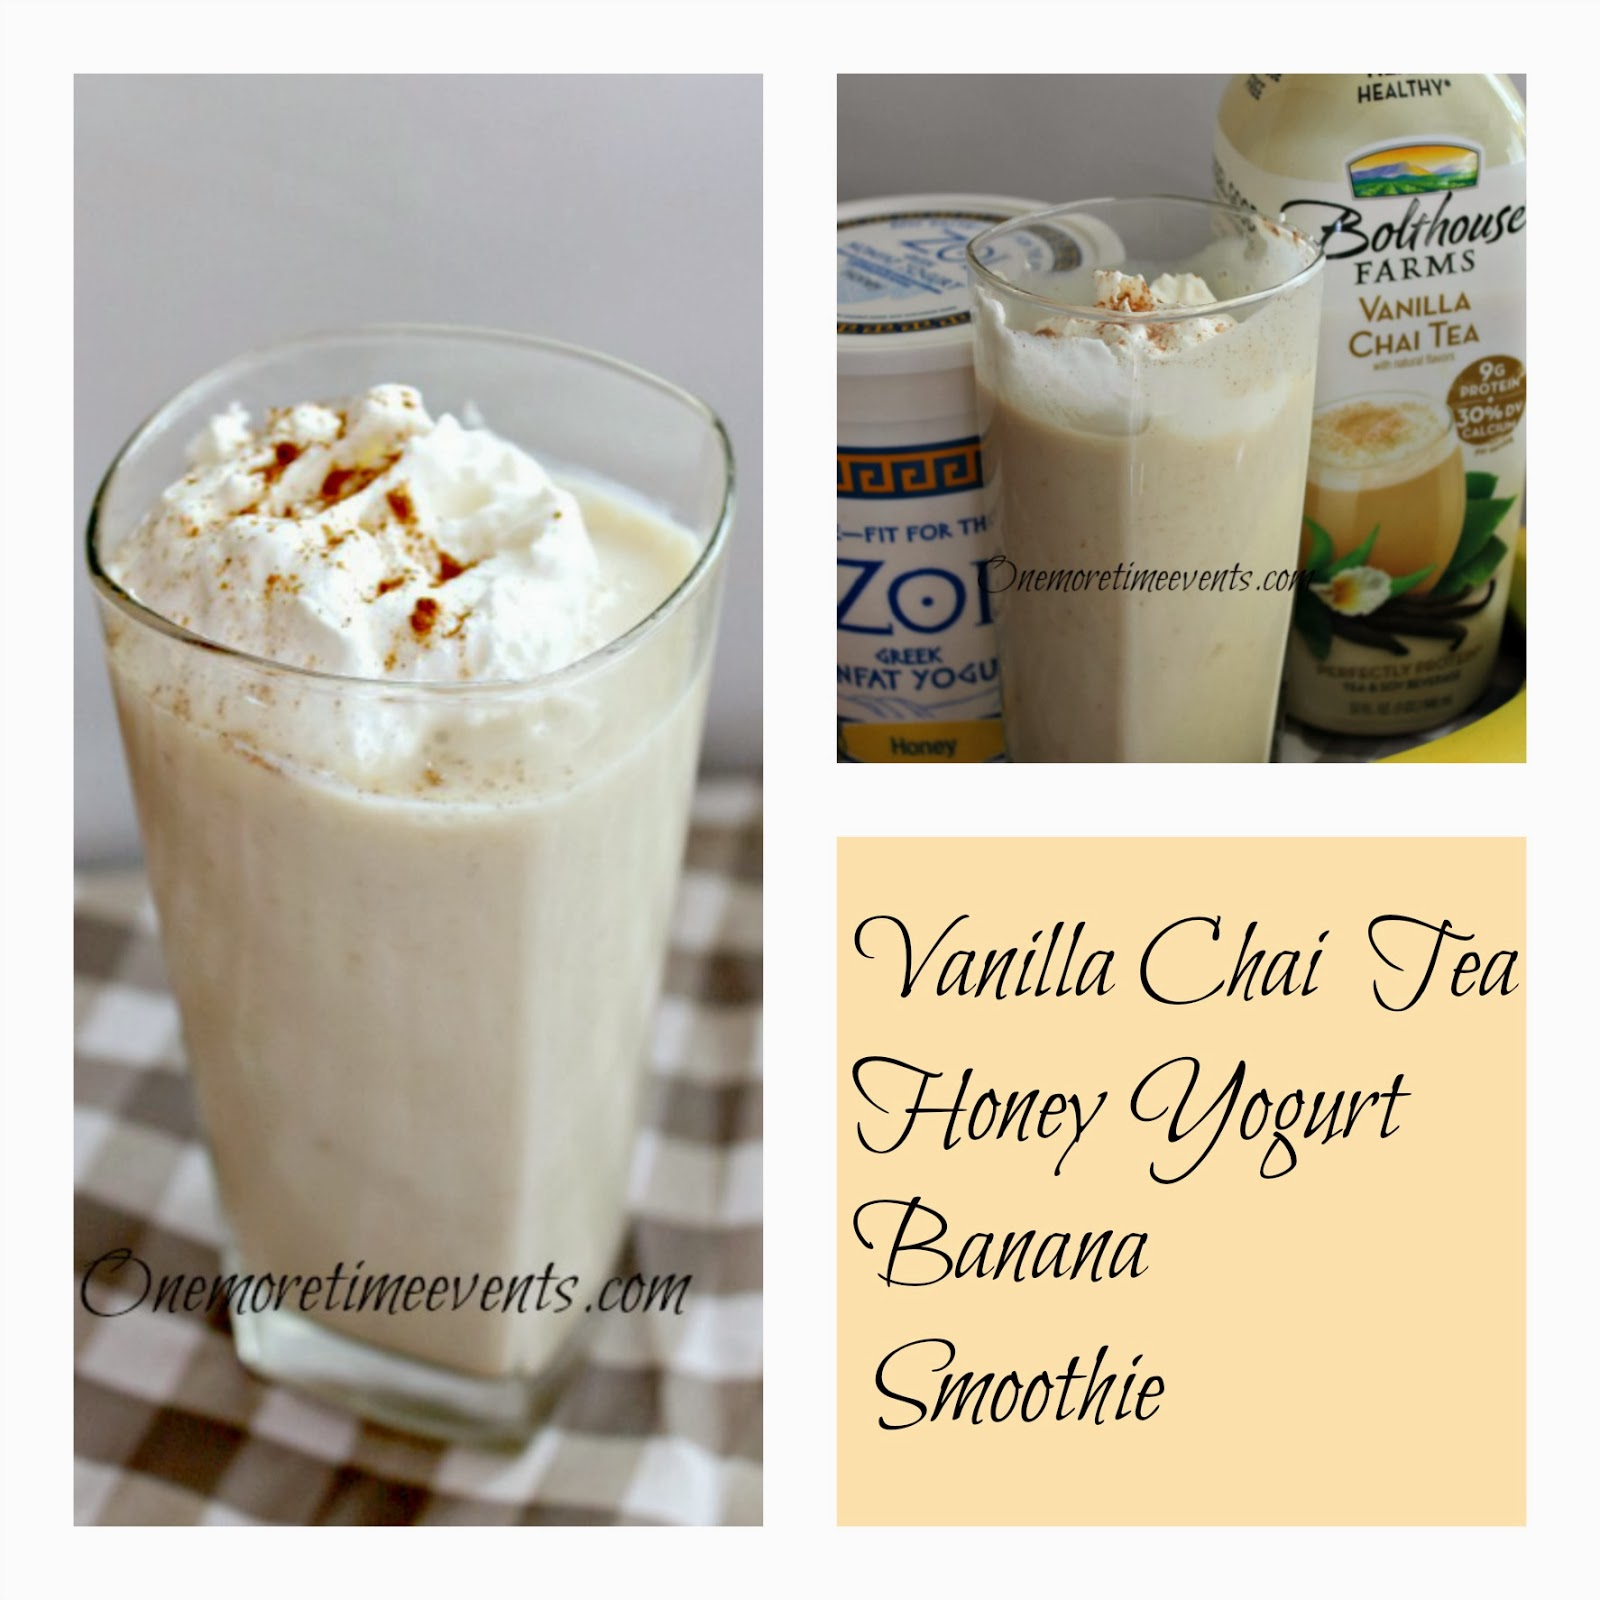 Vanilla Chai Banana non fat Protein Shake at One More Time Events.com